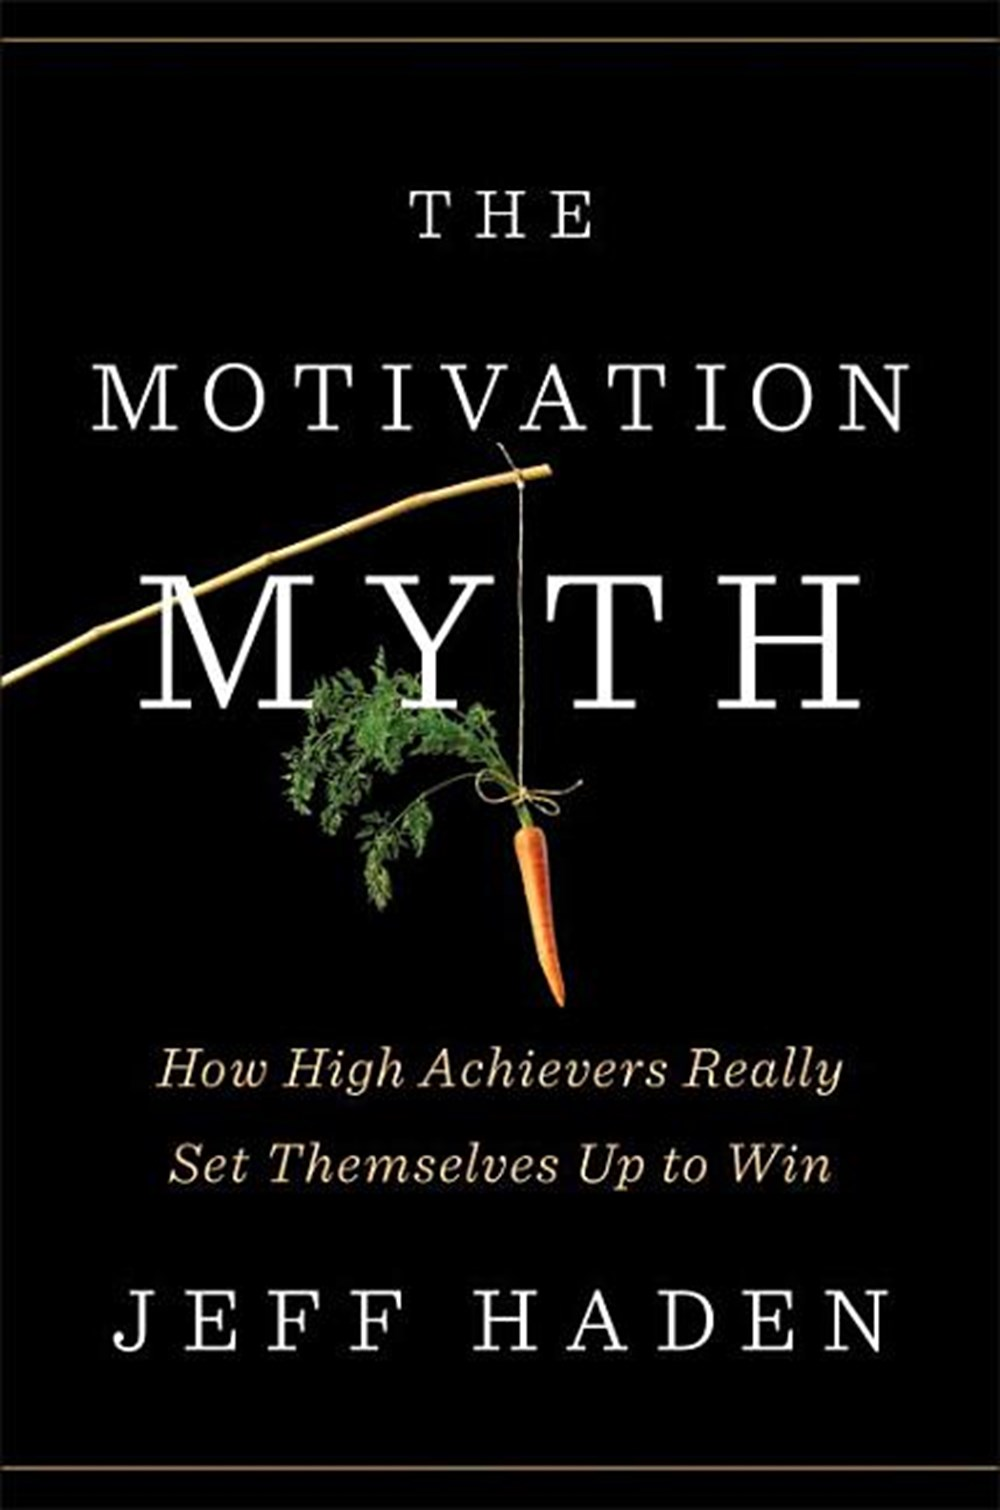 Motivation Myth How High Achievers Really Set Themselves Up to Win